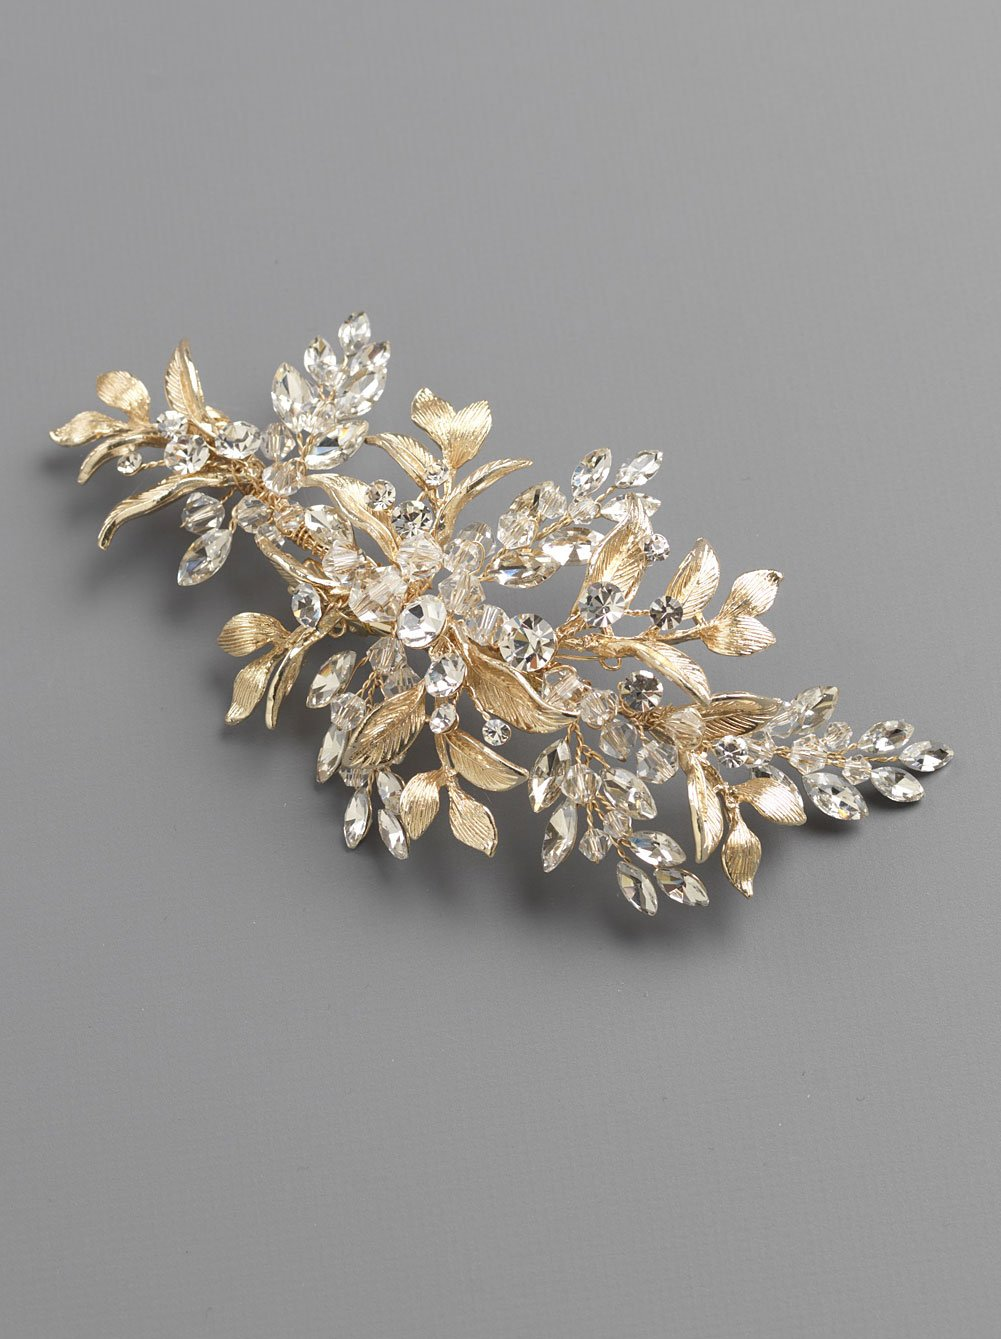 USABride Bridal Side Comb Gold-Plated Wedding Headpiece Floral Leaf Hair Accessory for Bride TC-2310-G (Gold)